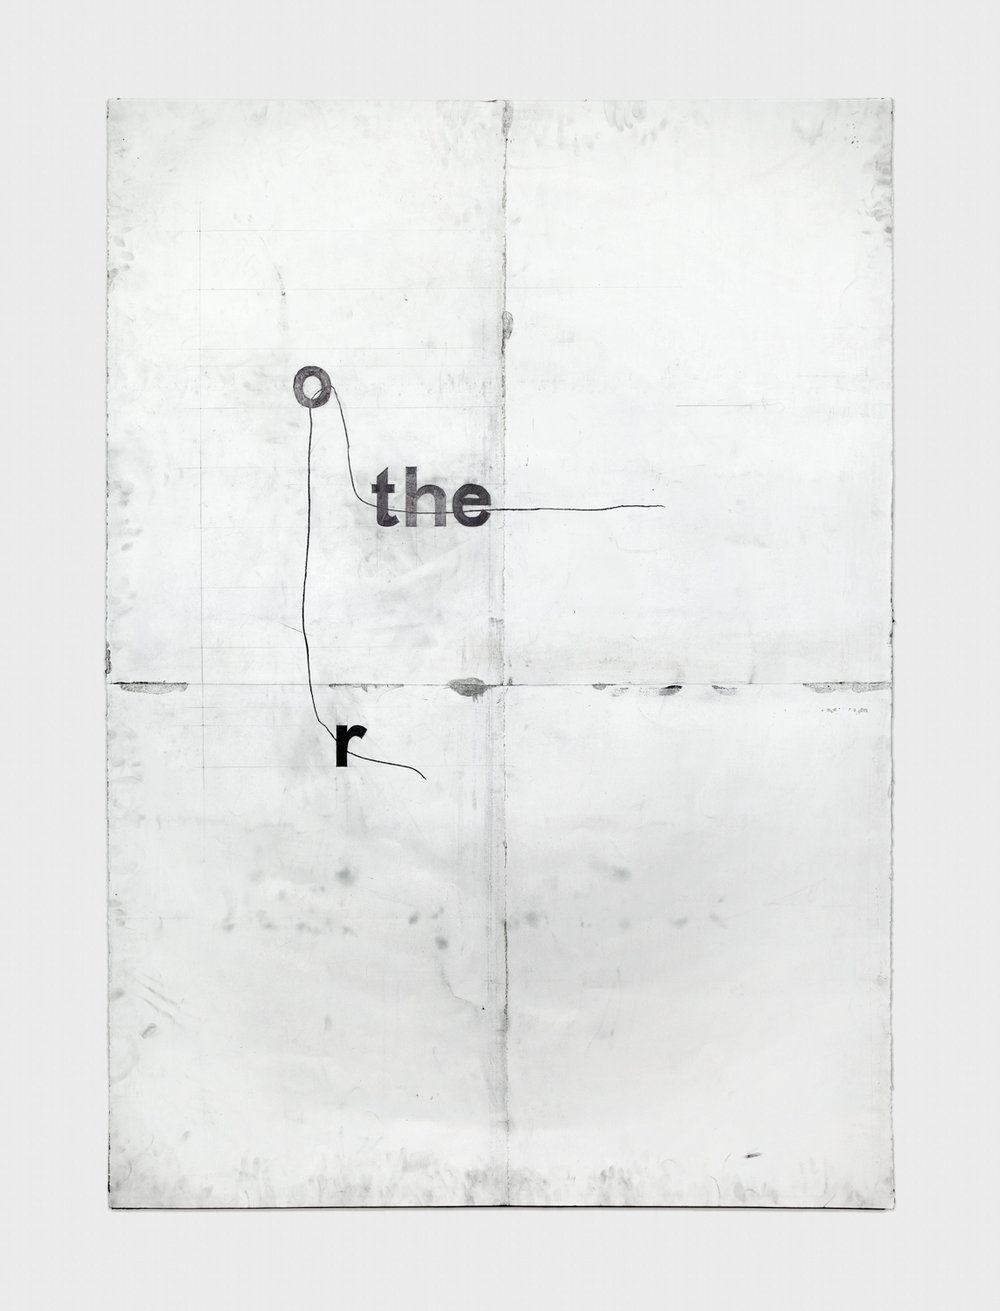 Tony Lewis  rothe  2012 Pencil and graphite powder on paper 84h x 60w in TL002